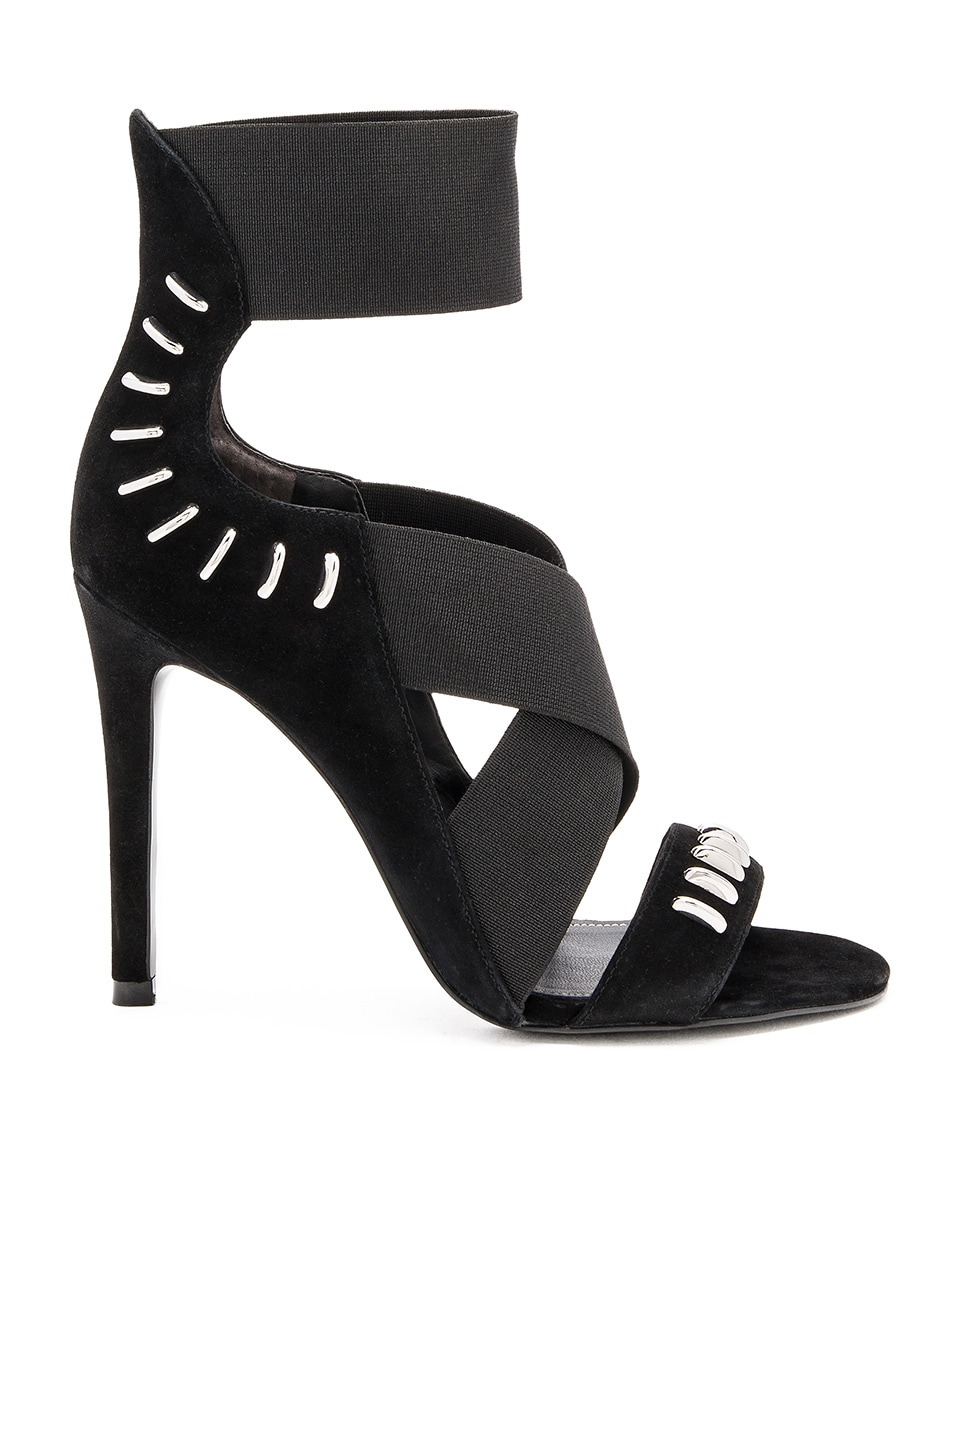 KENDALL + KYLIE Gianna Heel in Black Multi